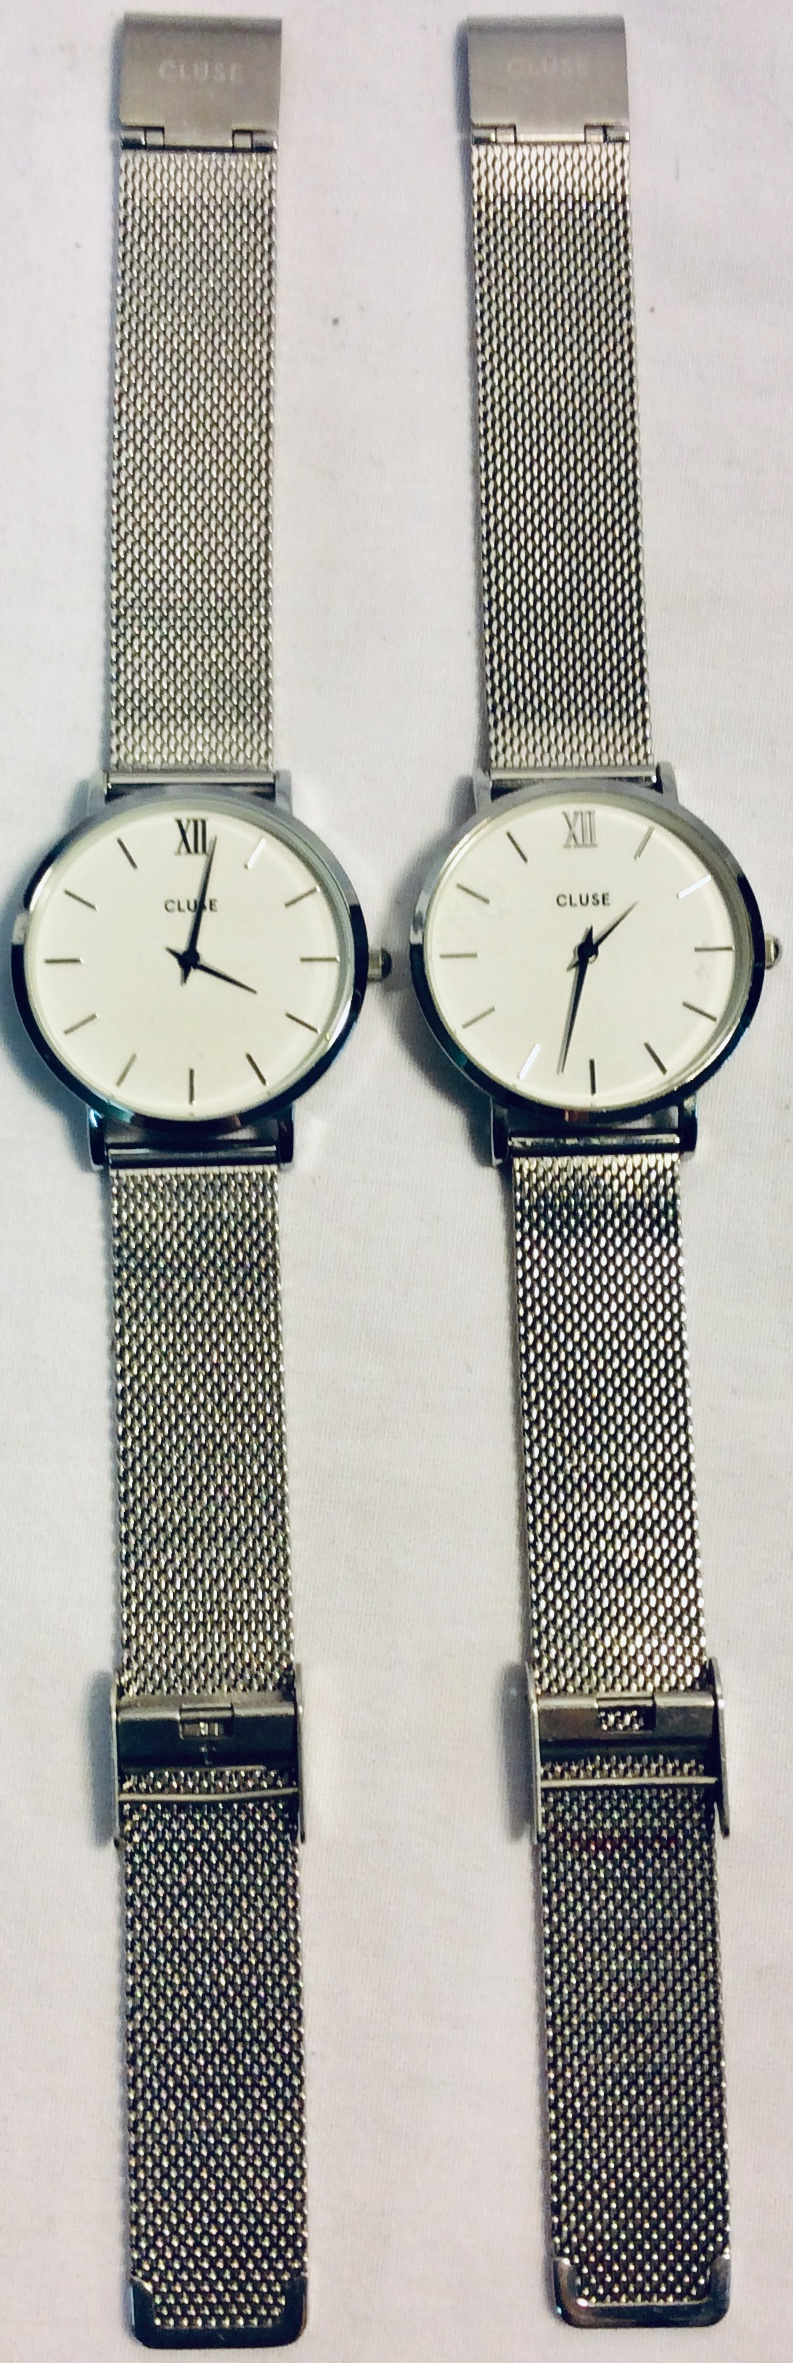 Cluse White face with silver details and woven metal band